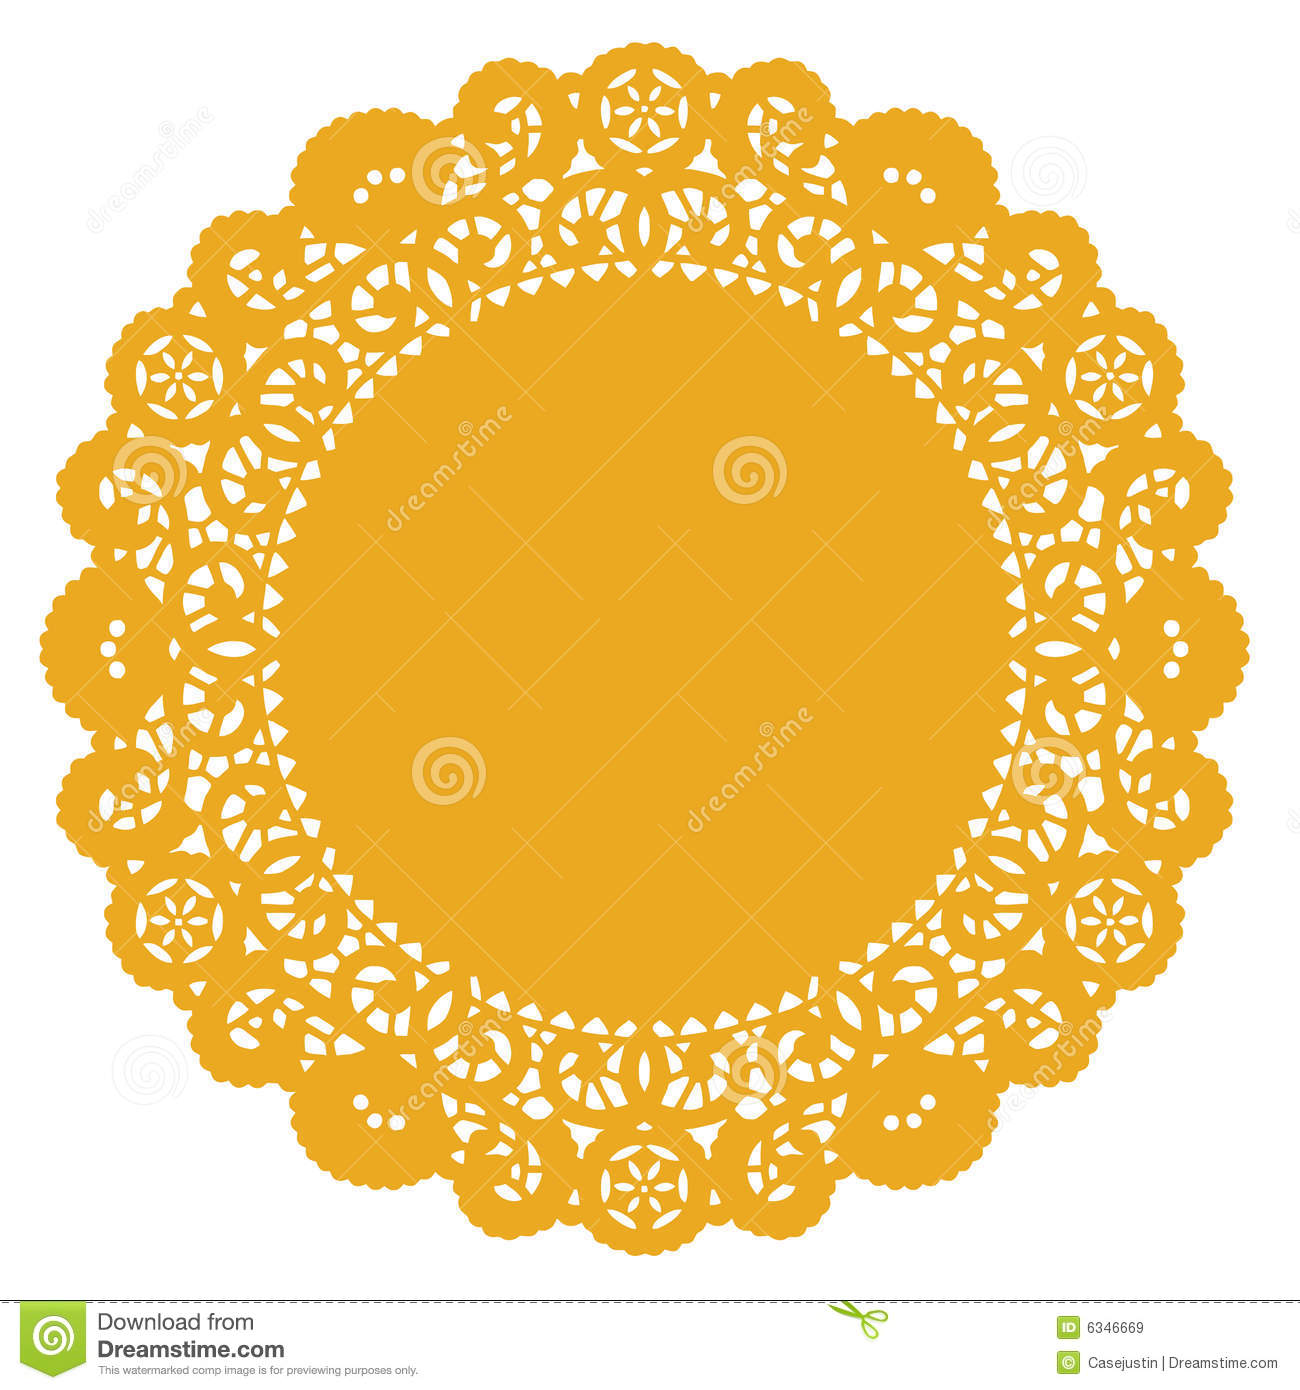 Round Lace Doily Gold Stock Vector Image Of Eps8 Needlework 6346669